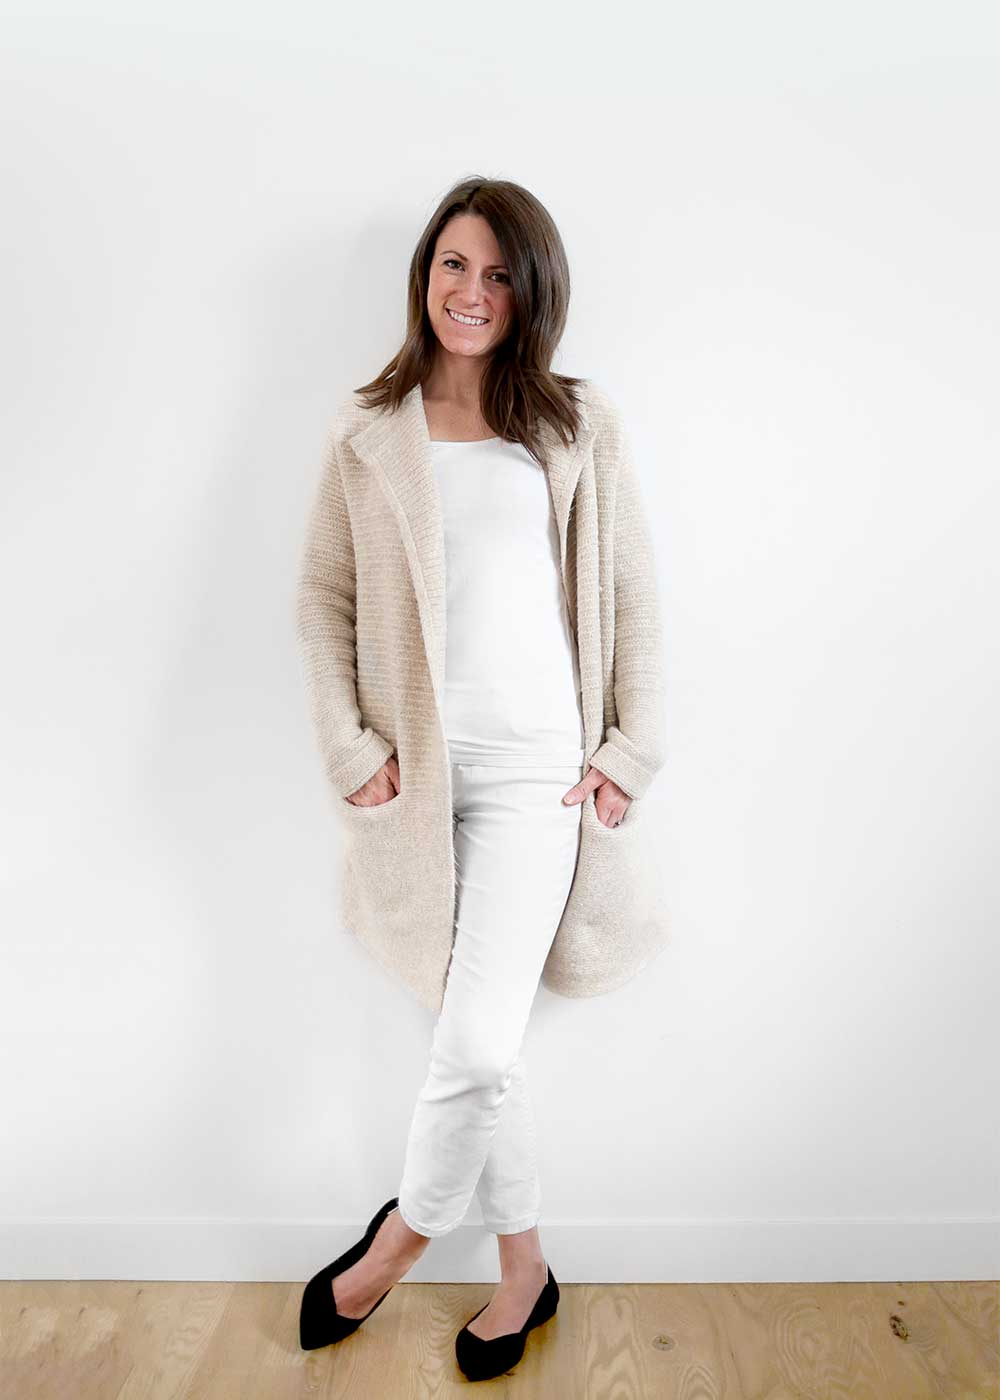 The Faux Martha winter minimalist wardrobe